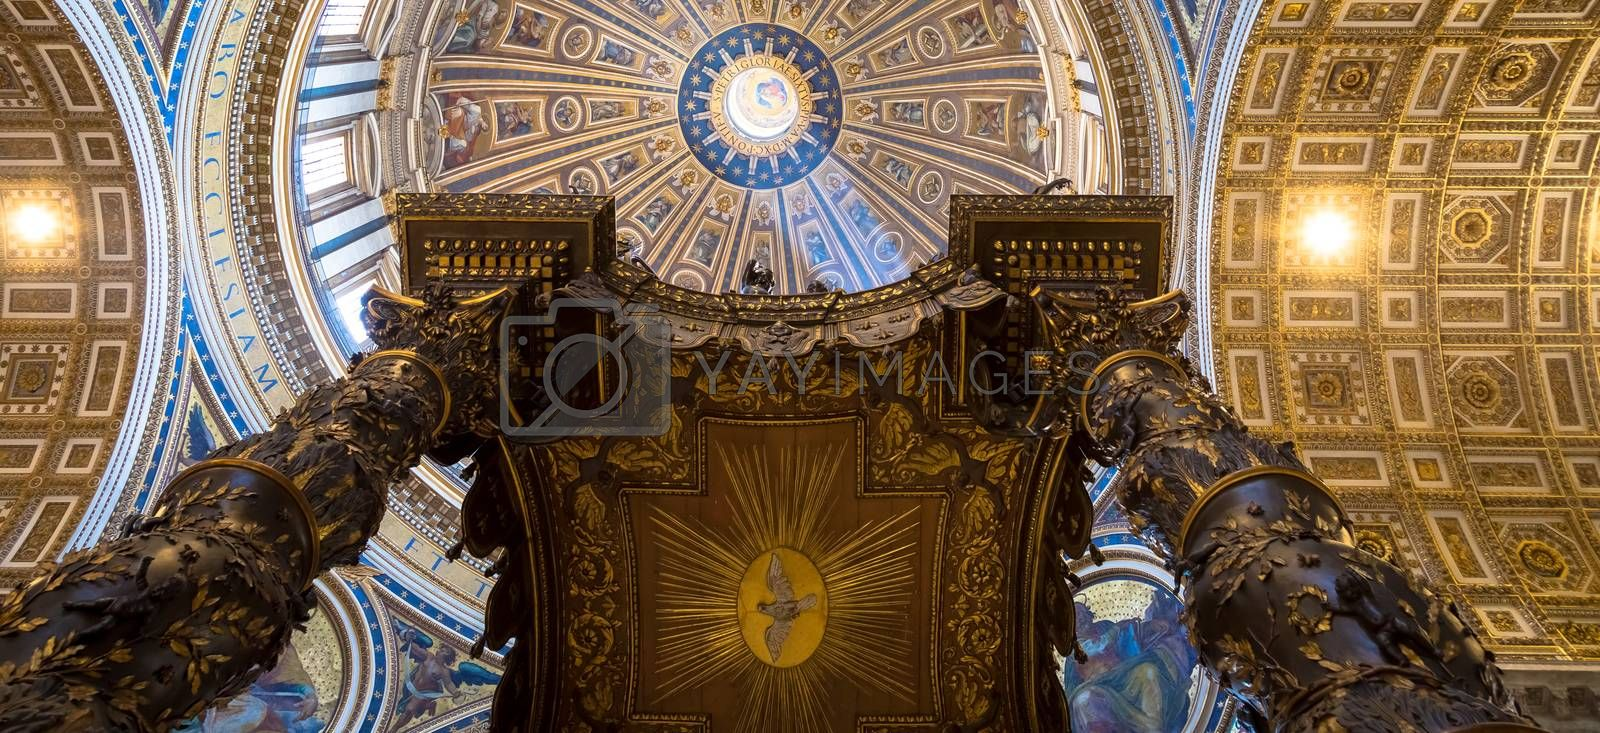 Saint Peter Basilica, Vatican State in Rome: interior with detail of cupola decorations